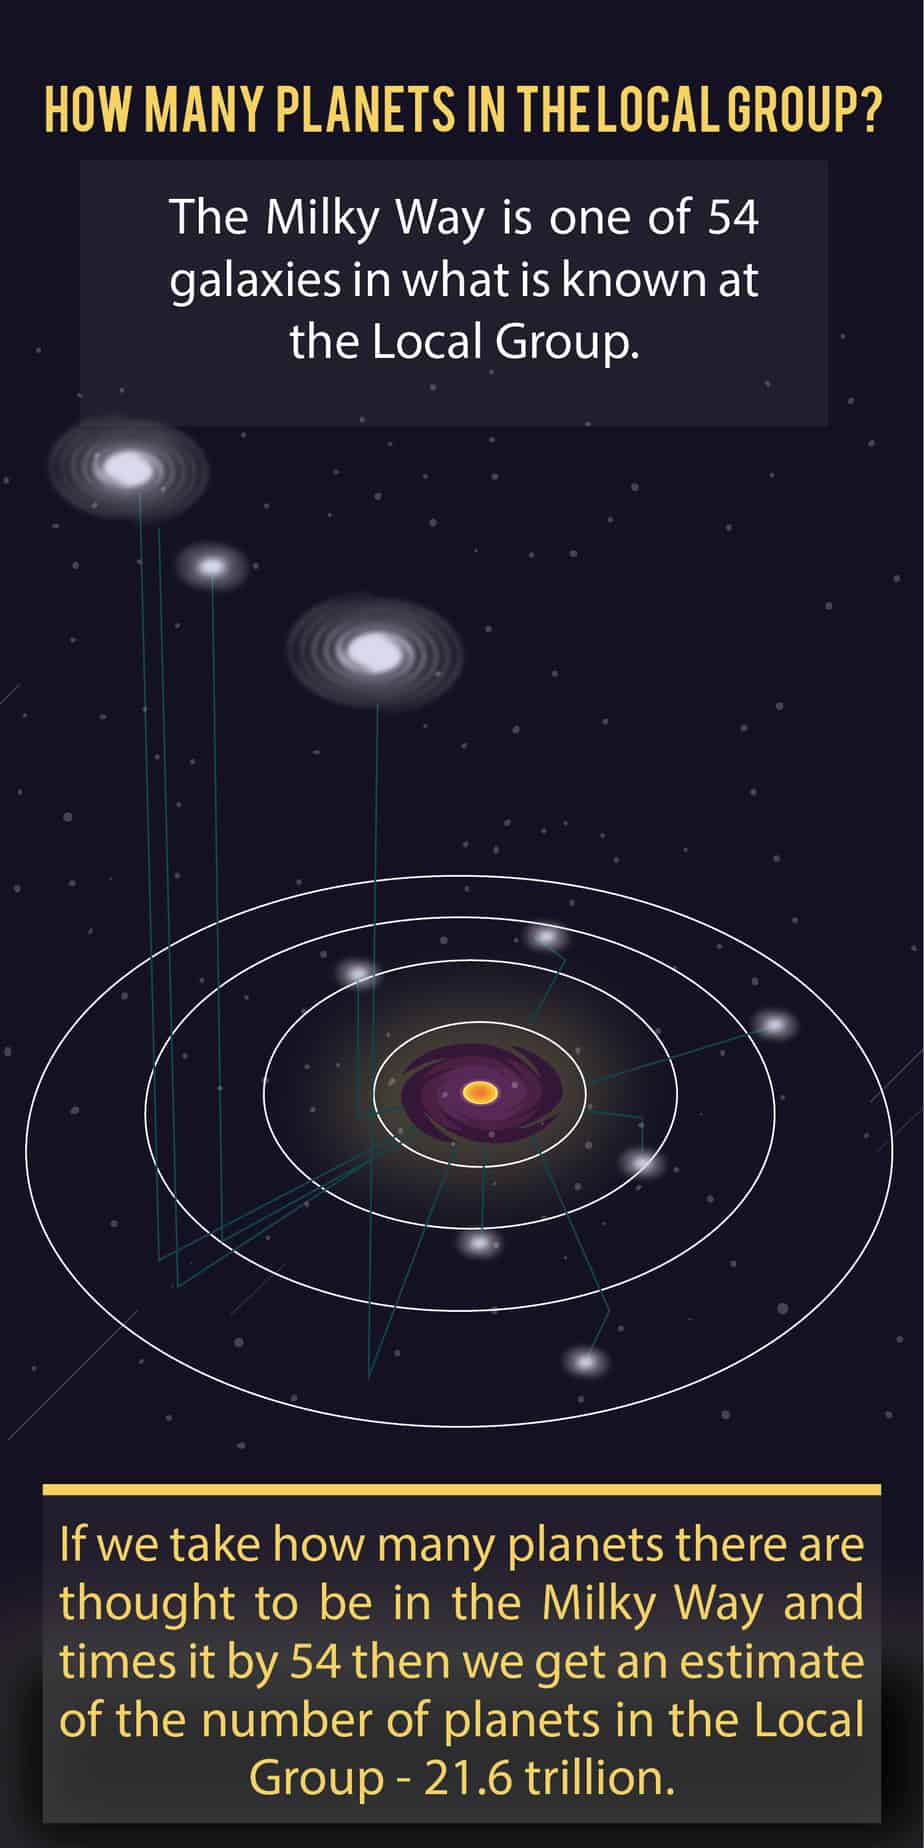 how many planets in the local group